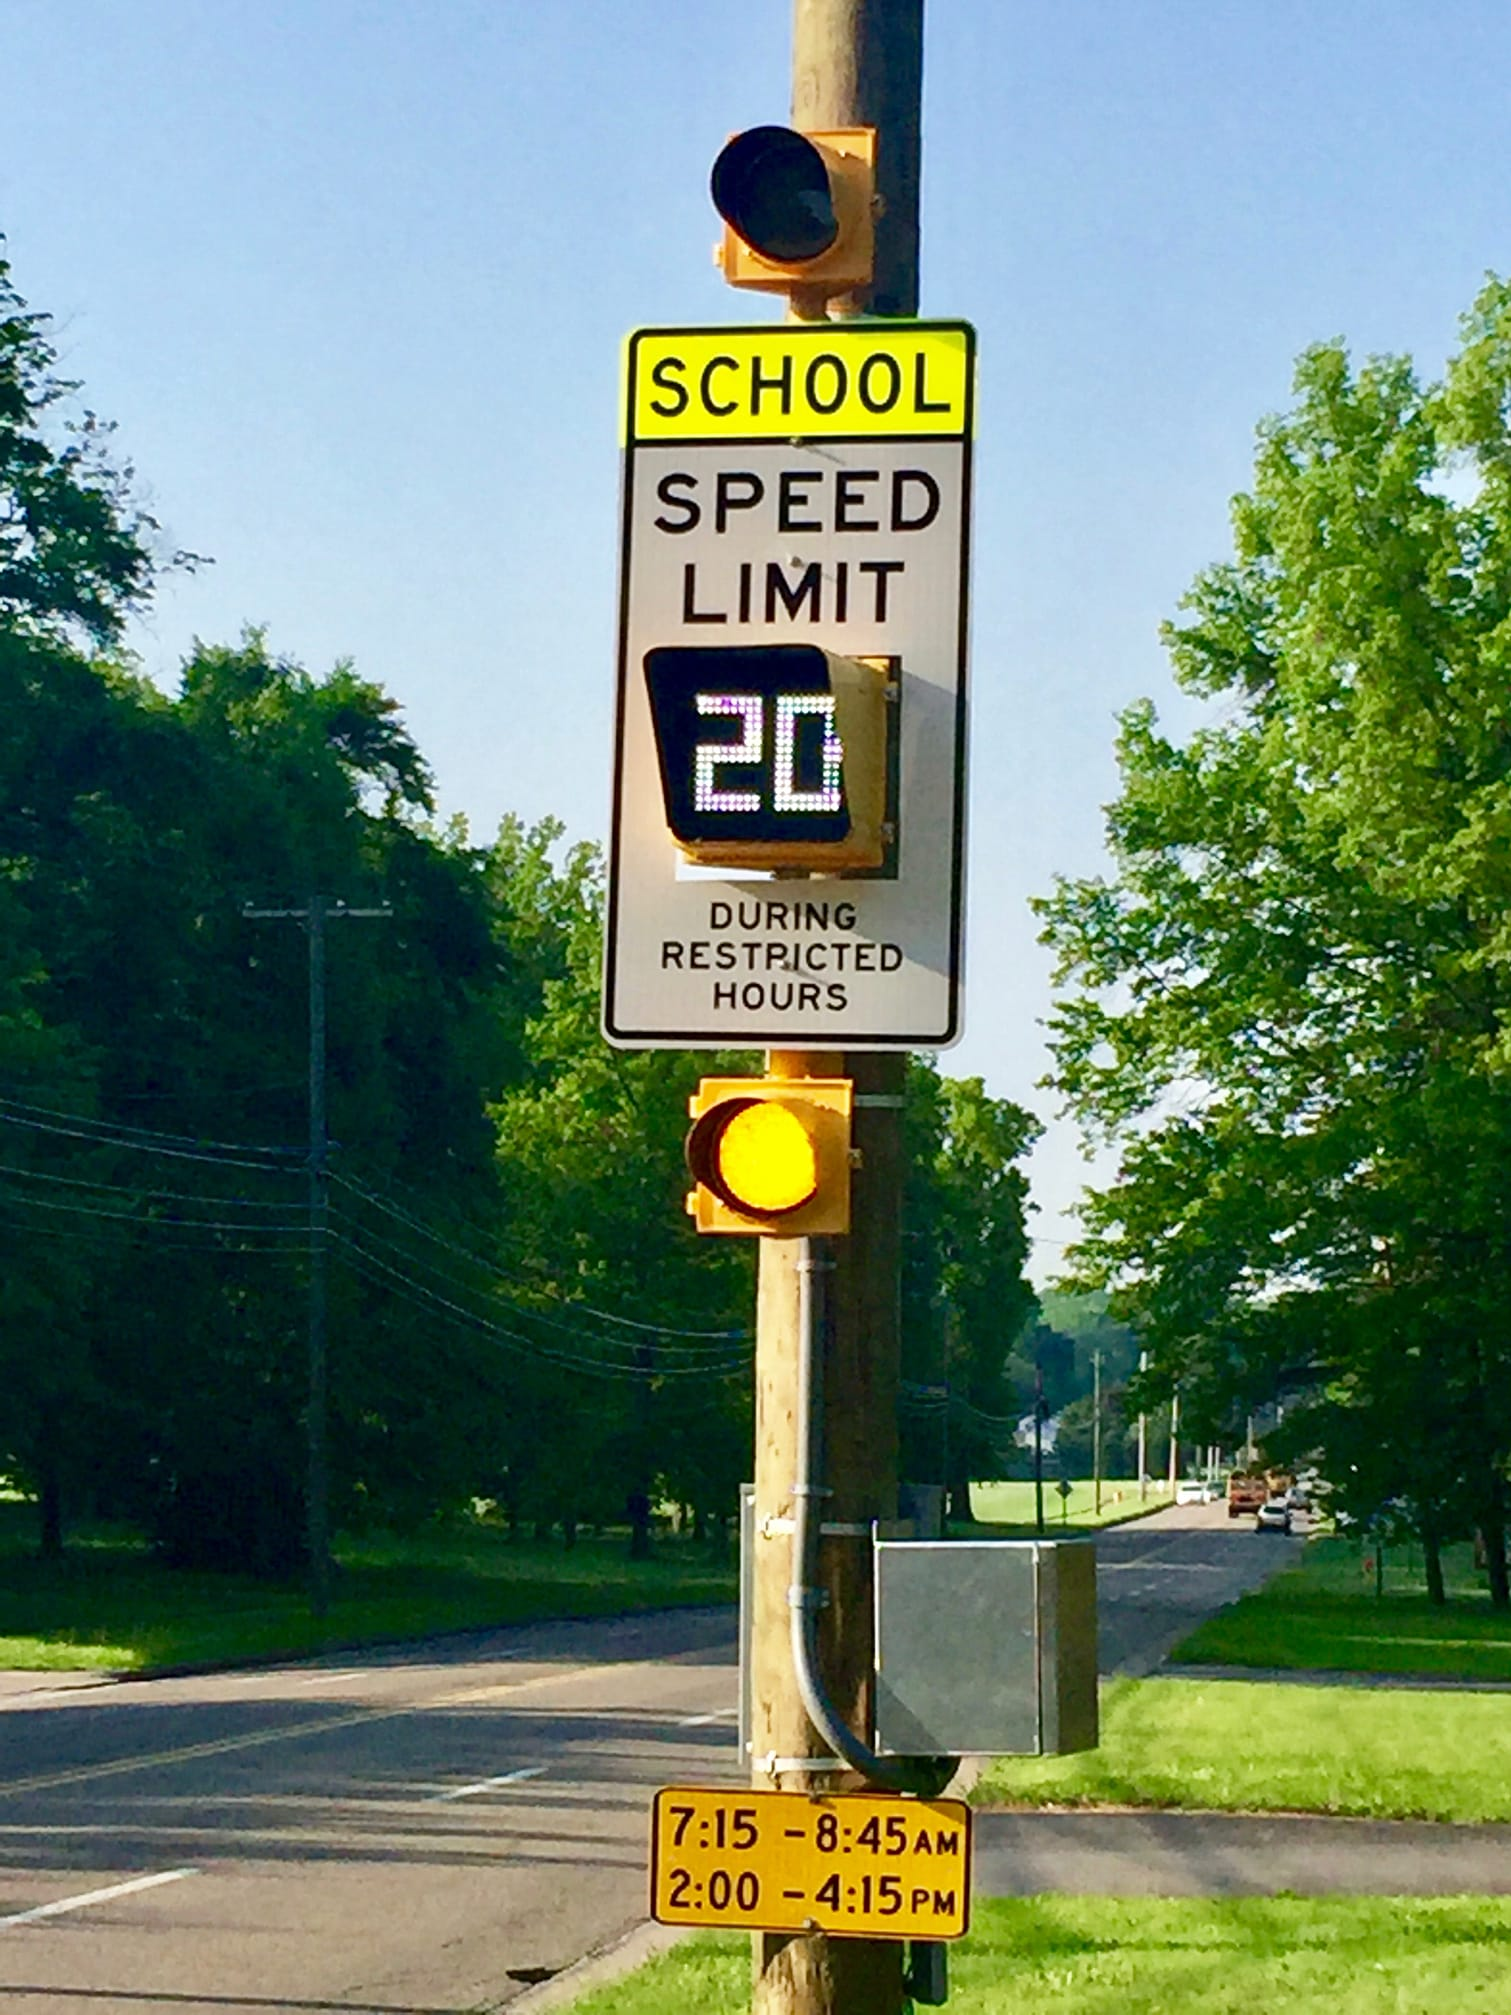 SCHOOL SPEED LIMIT LIGHTS AT 20 MPH ON GLENWOOD